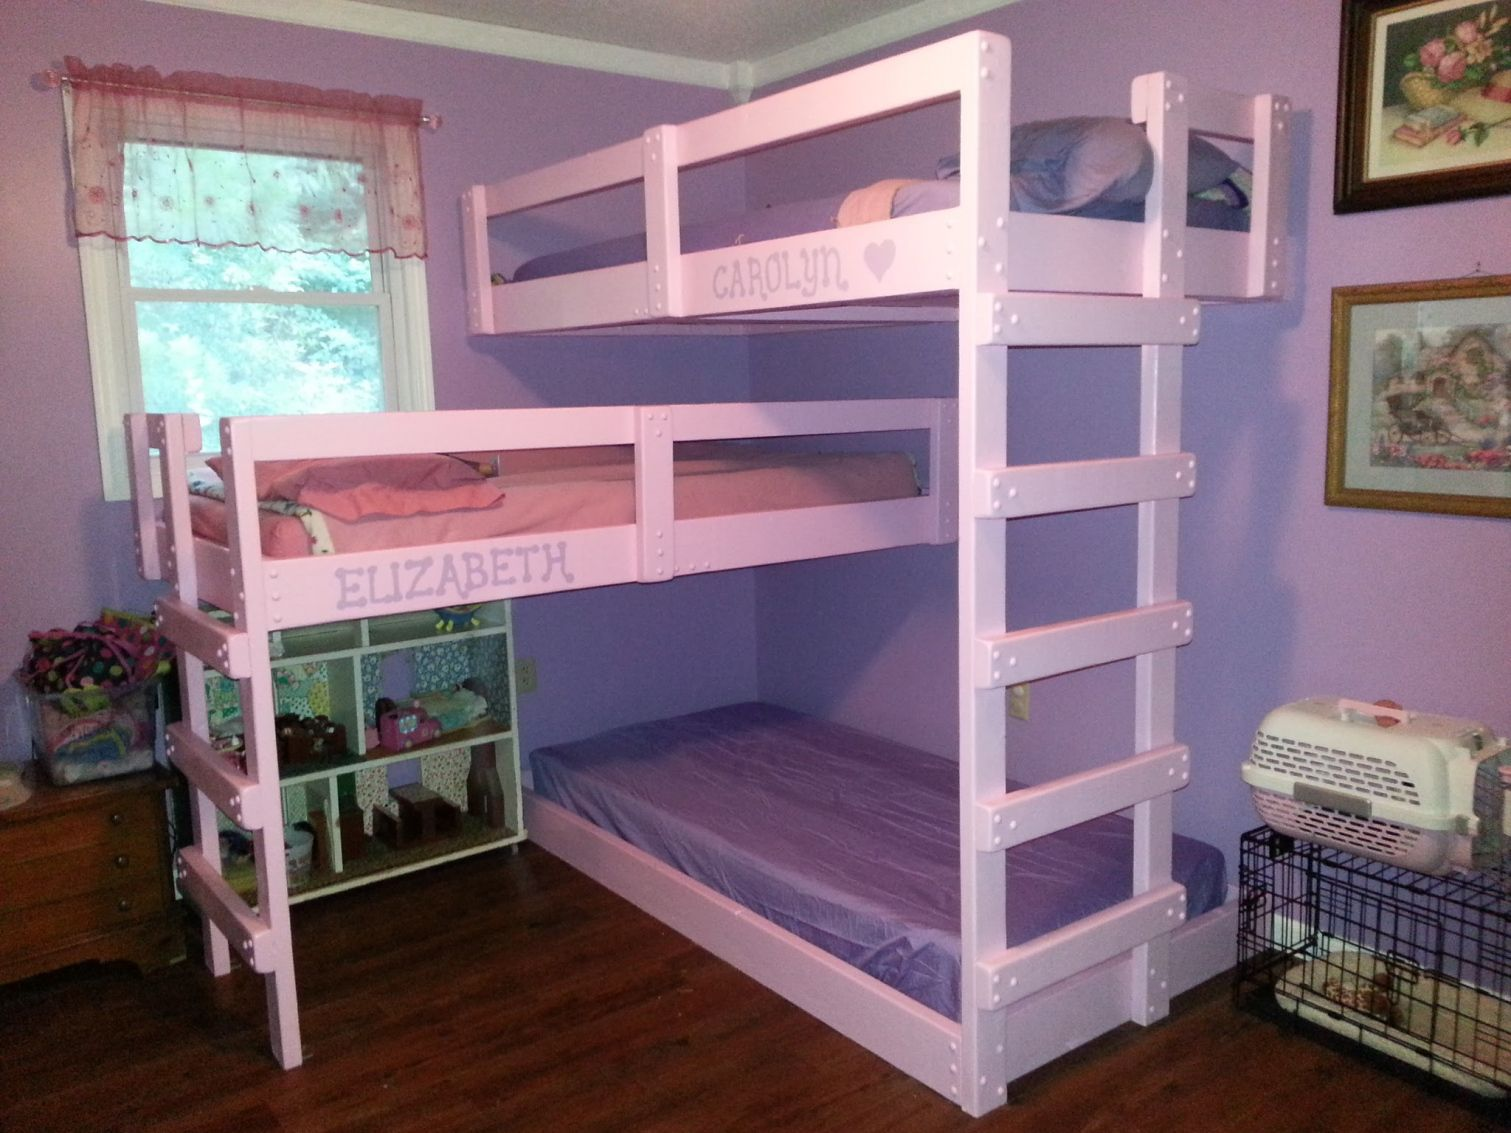 30 Bunk Beds For Small Rooms   Interior Bedroom Paint Colors Check More At  Http://billiepiperfan.com/bunk Beds For Small Rooms/